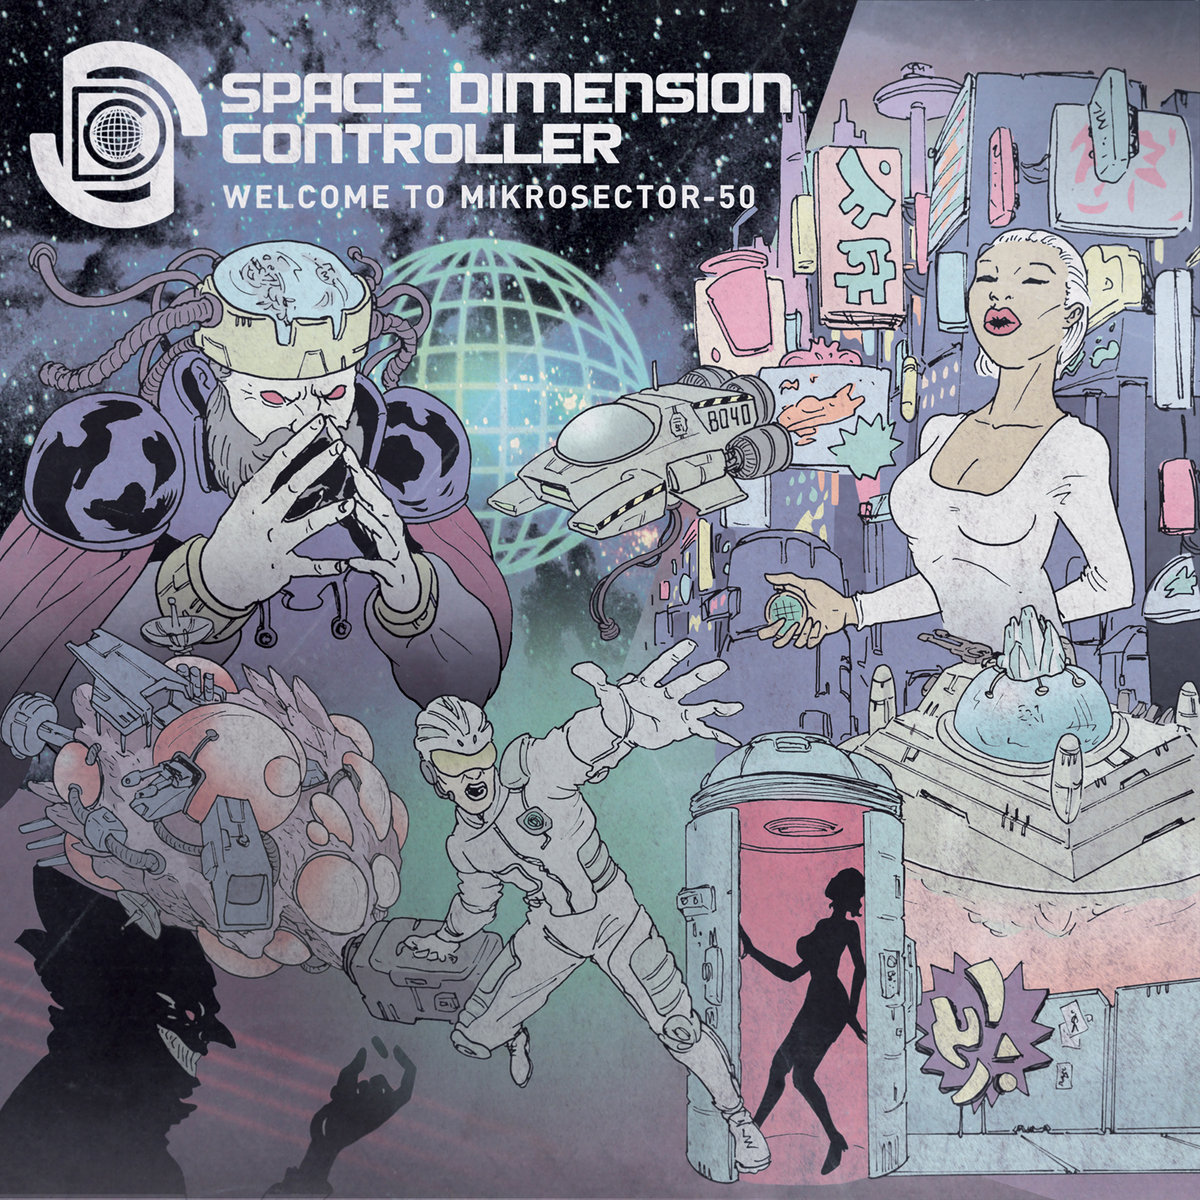 Space Dimension Controller - Welcome to Mikrosector-50